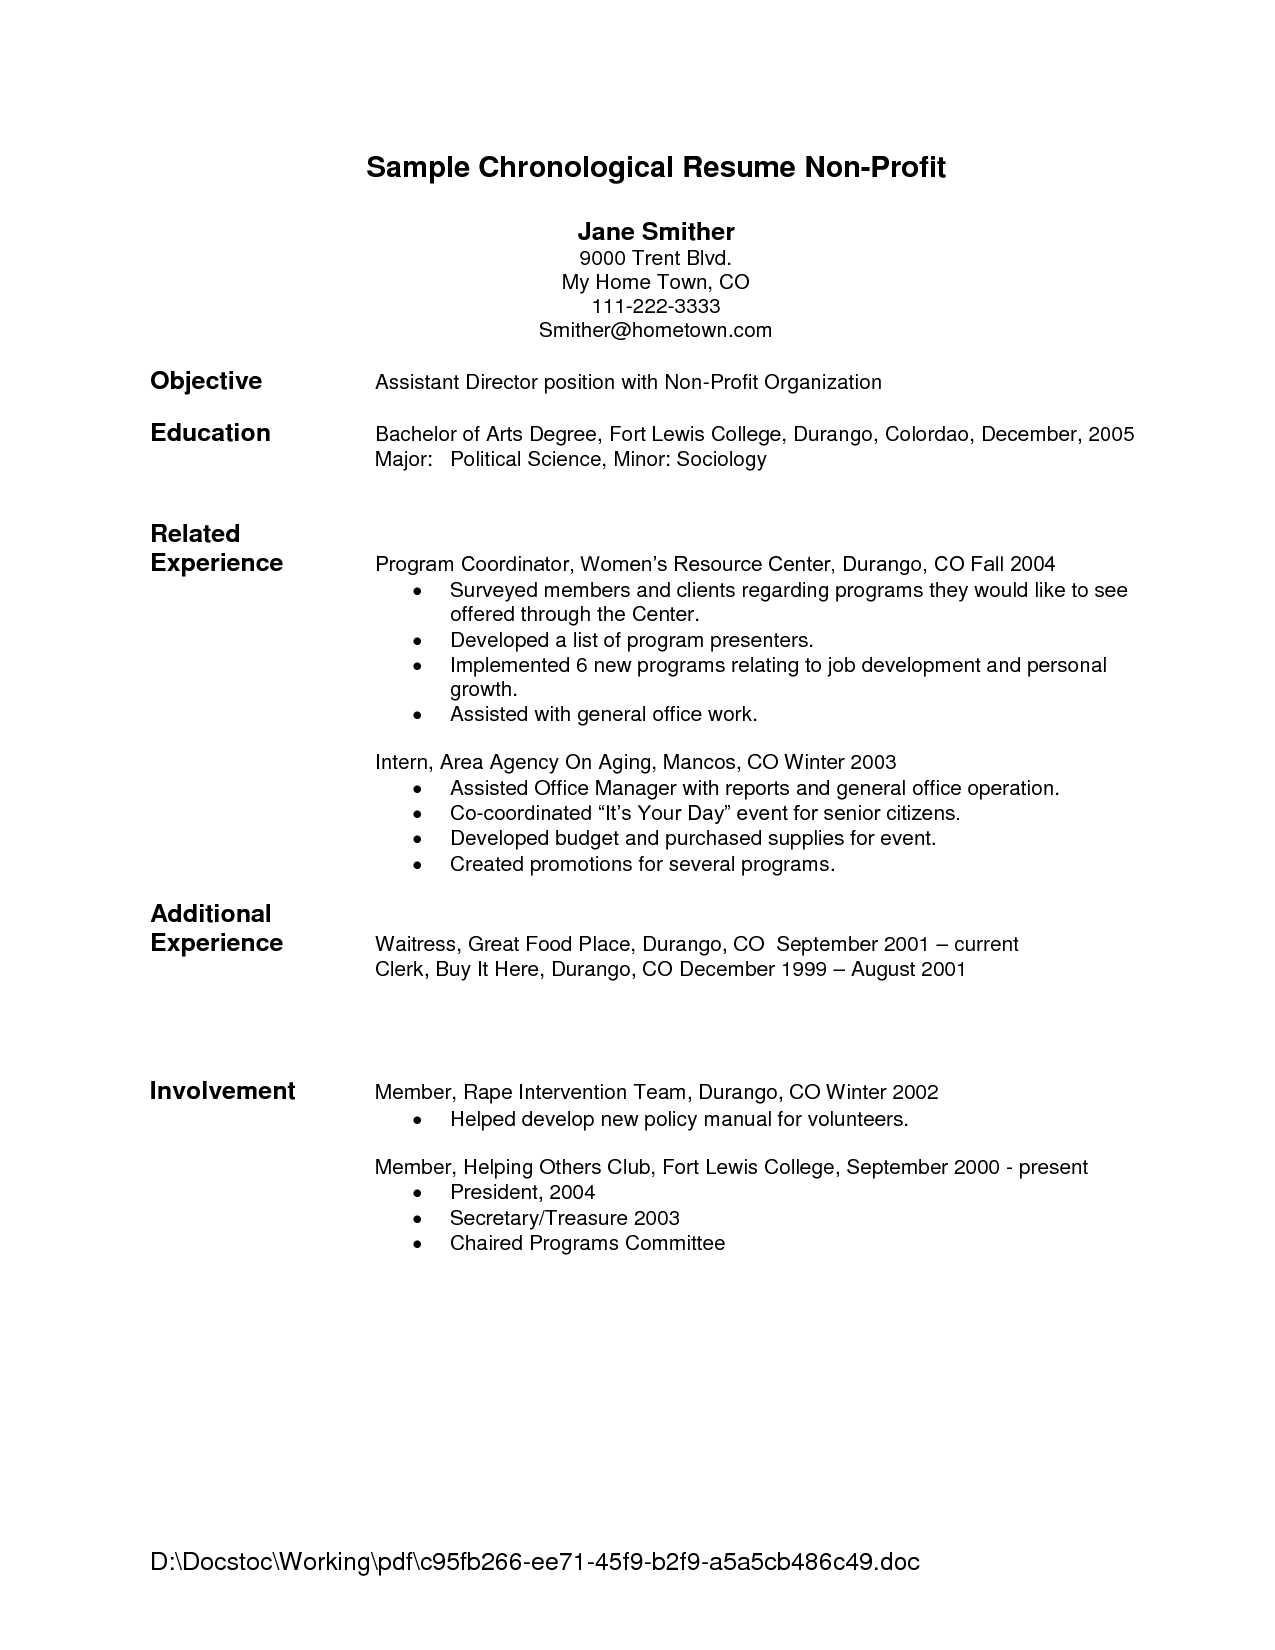 Chronological Resume Template Chronological Resume Template  Monday Resume  Pinterest